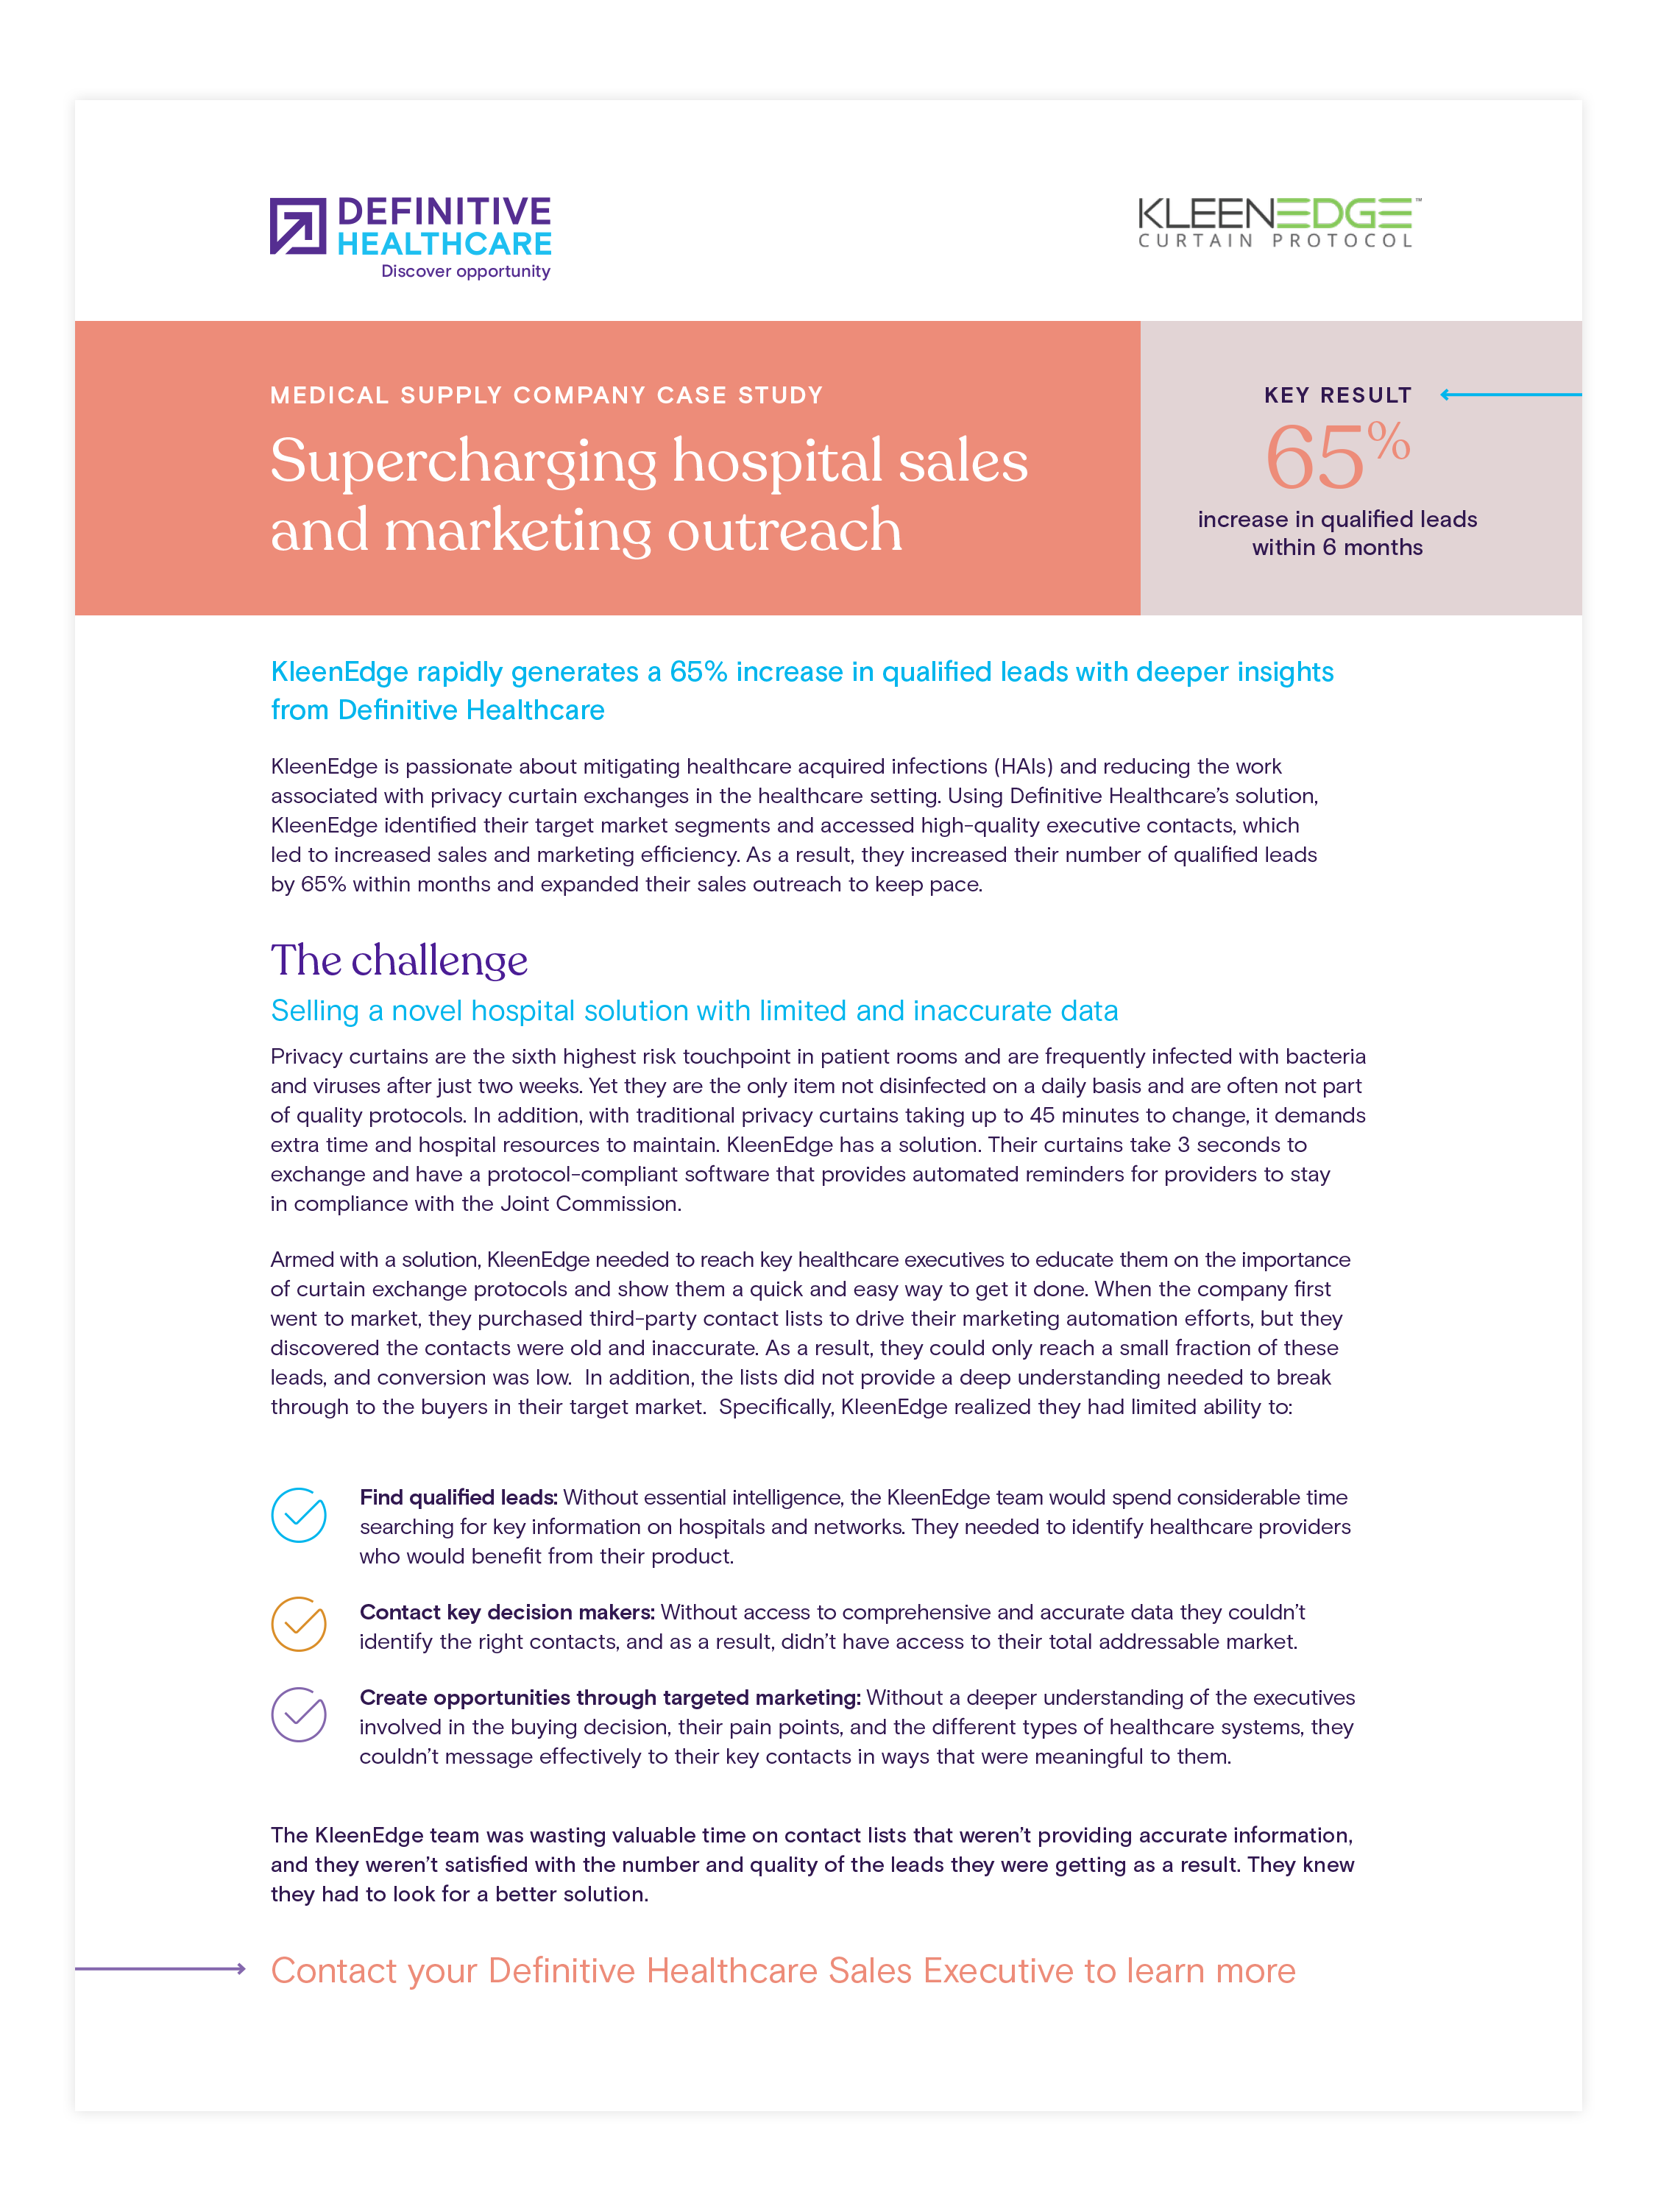 Supercharging hospital sales and marketing outreach